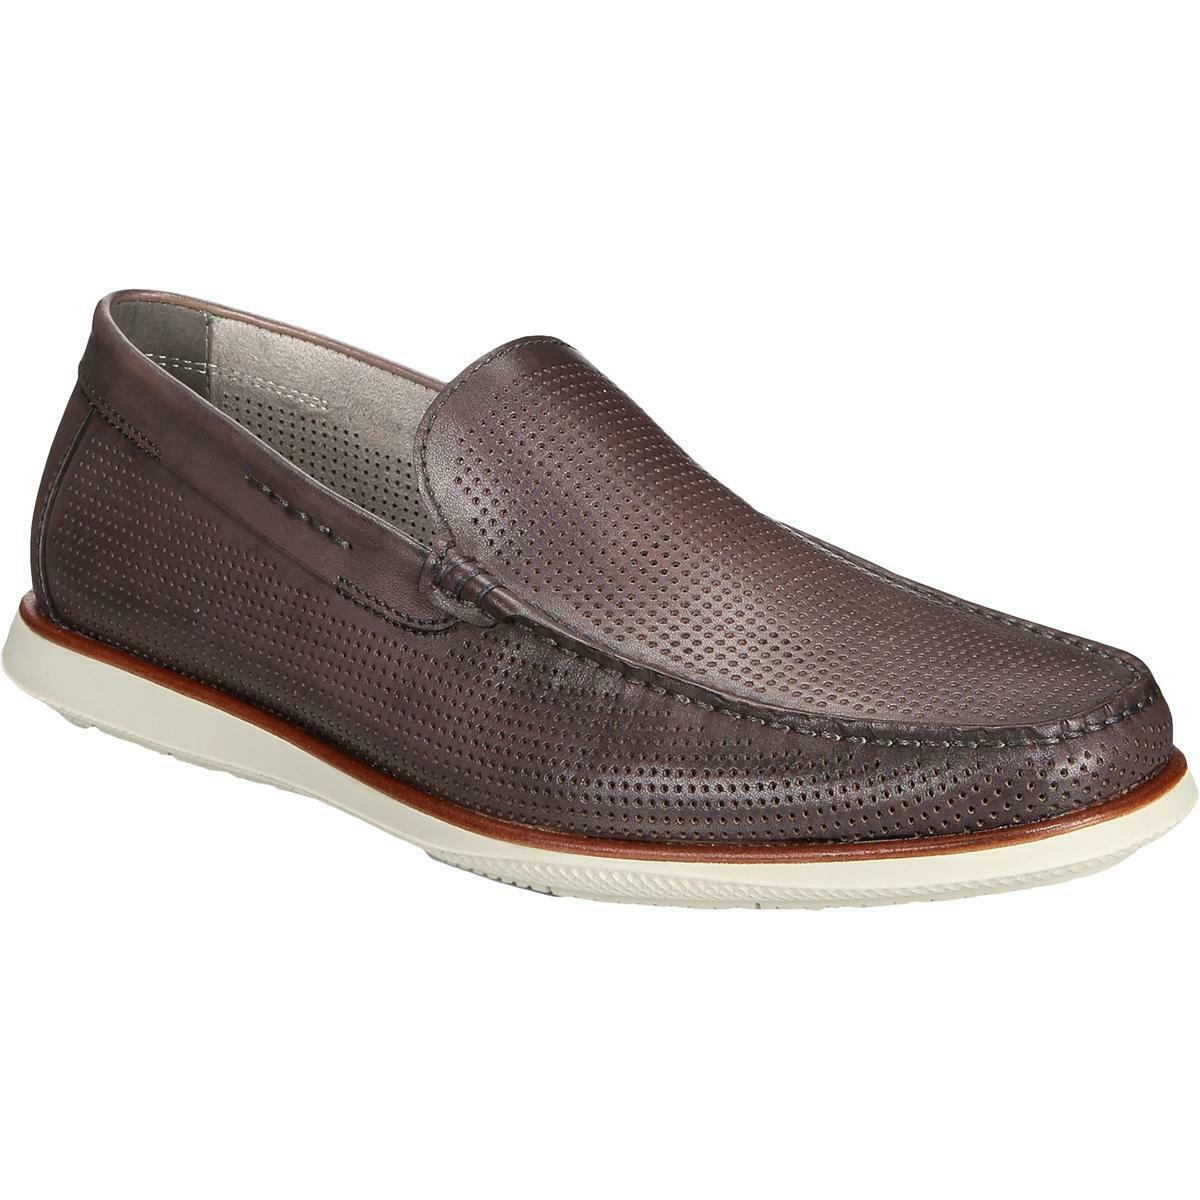 Kenneth Cole New York Mens Cyrus Gray Loafers Shoes 9 Medium (D) BHFO 3262